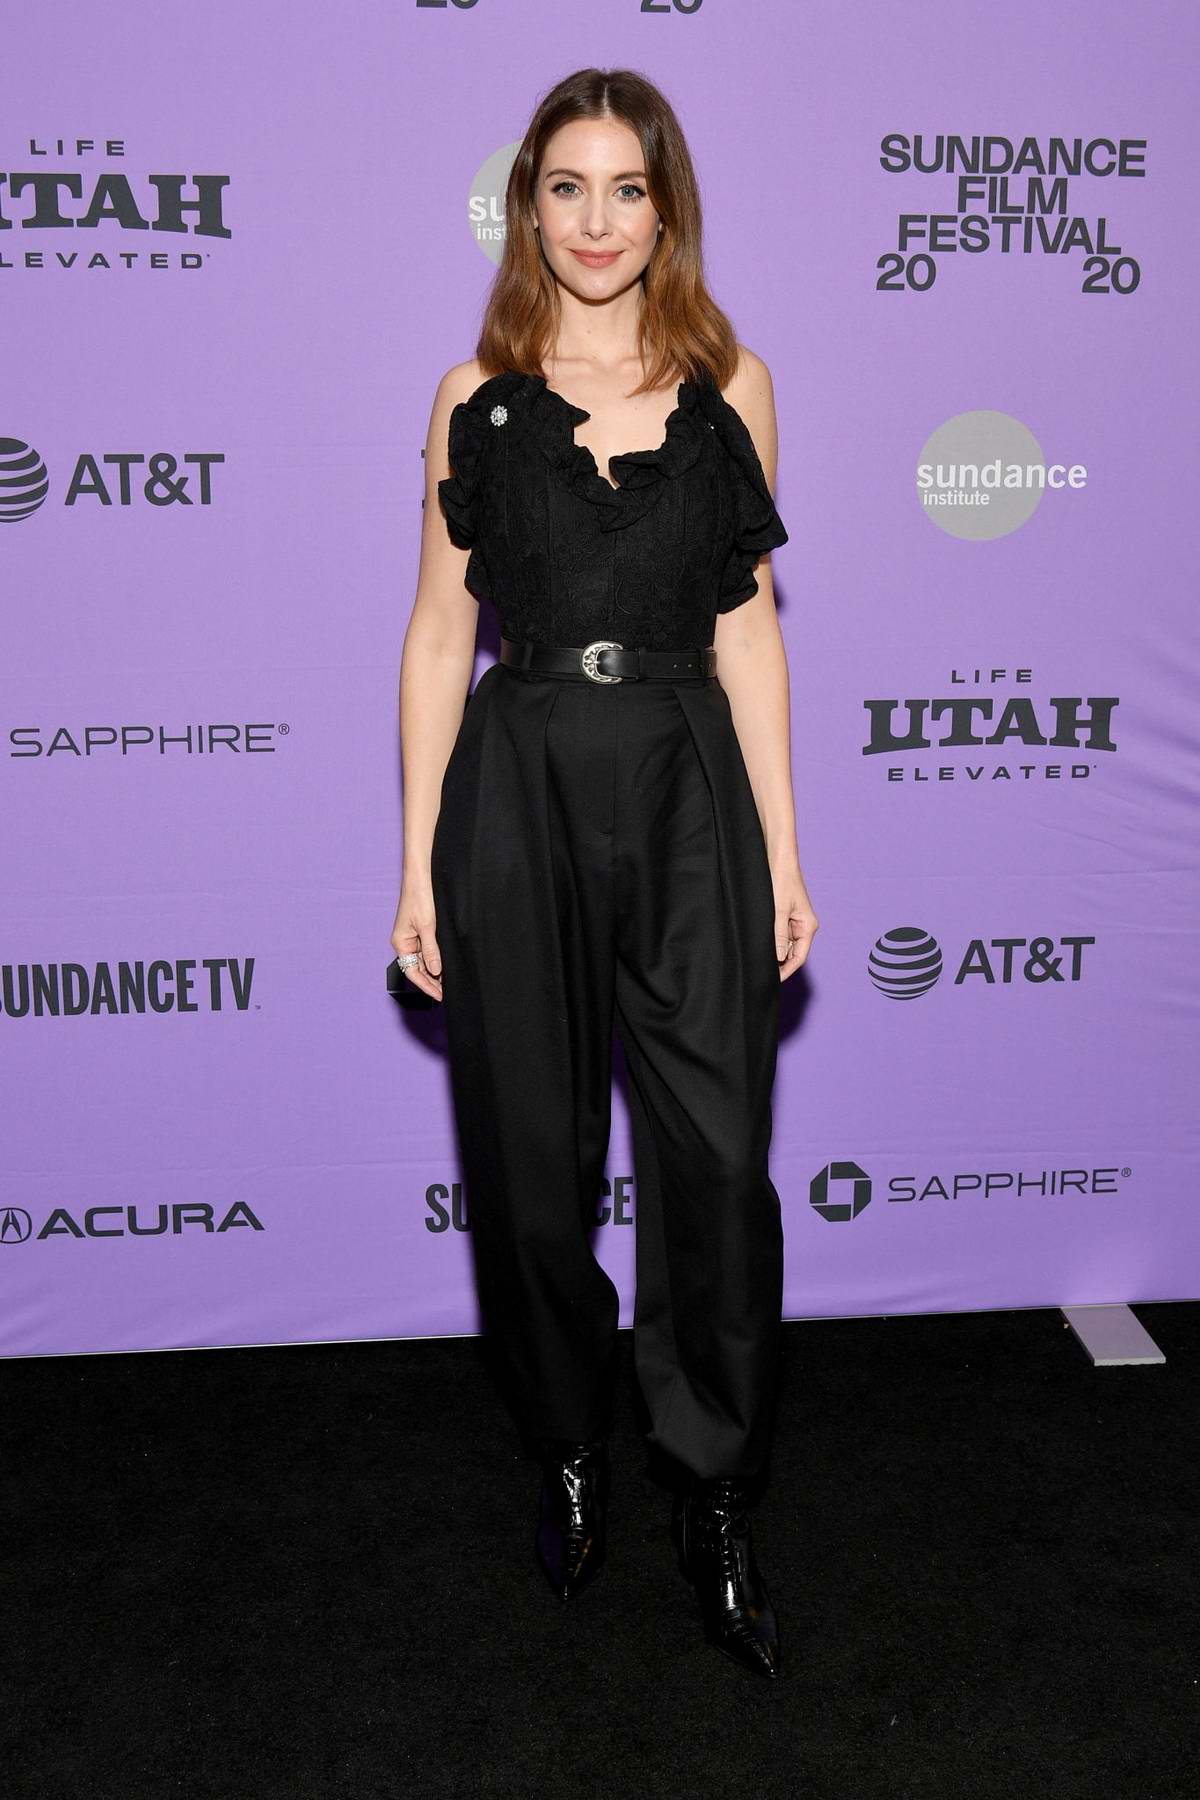 Alison Brie attends the Premiere of 'Promising Young Woman' during the Sundance Film Festival 2020 in Park City, Utah